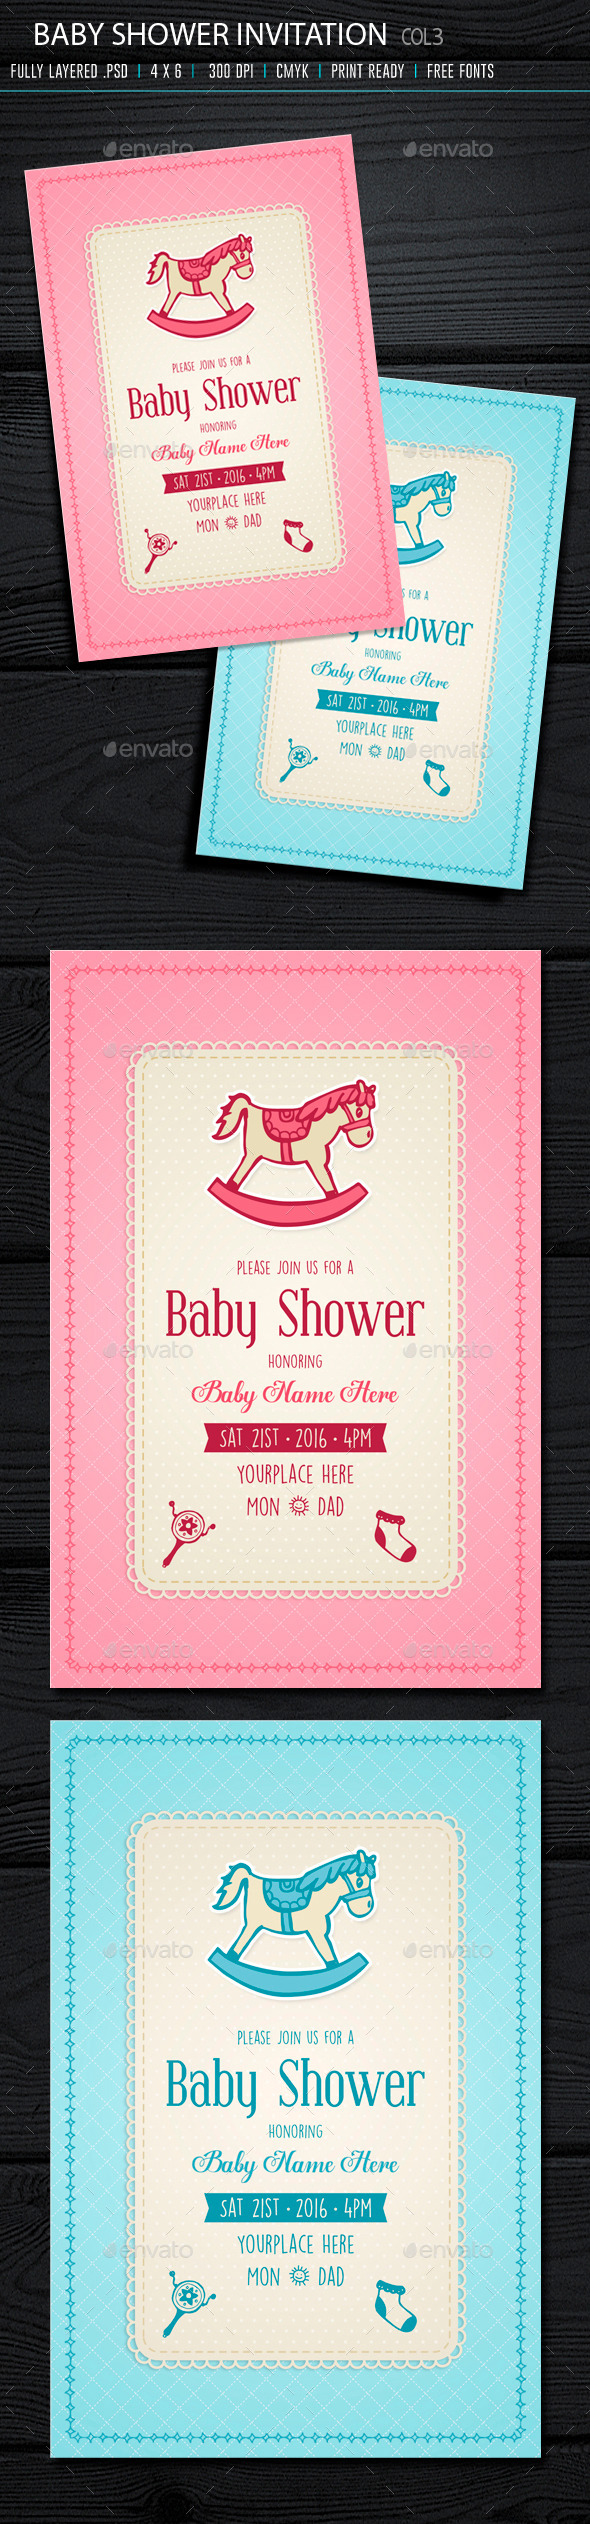 Baby Shower Invitation 3 - Cards & Invites Print Templates